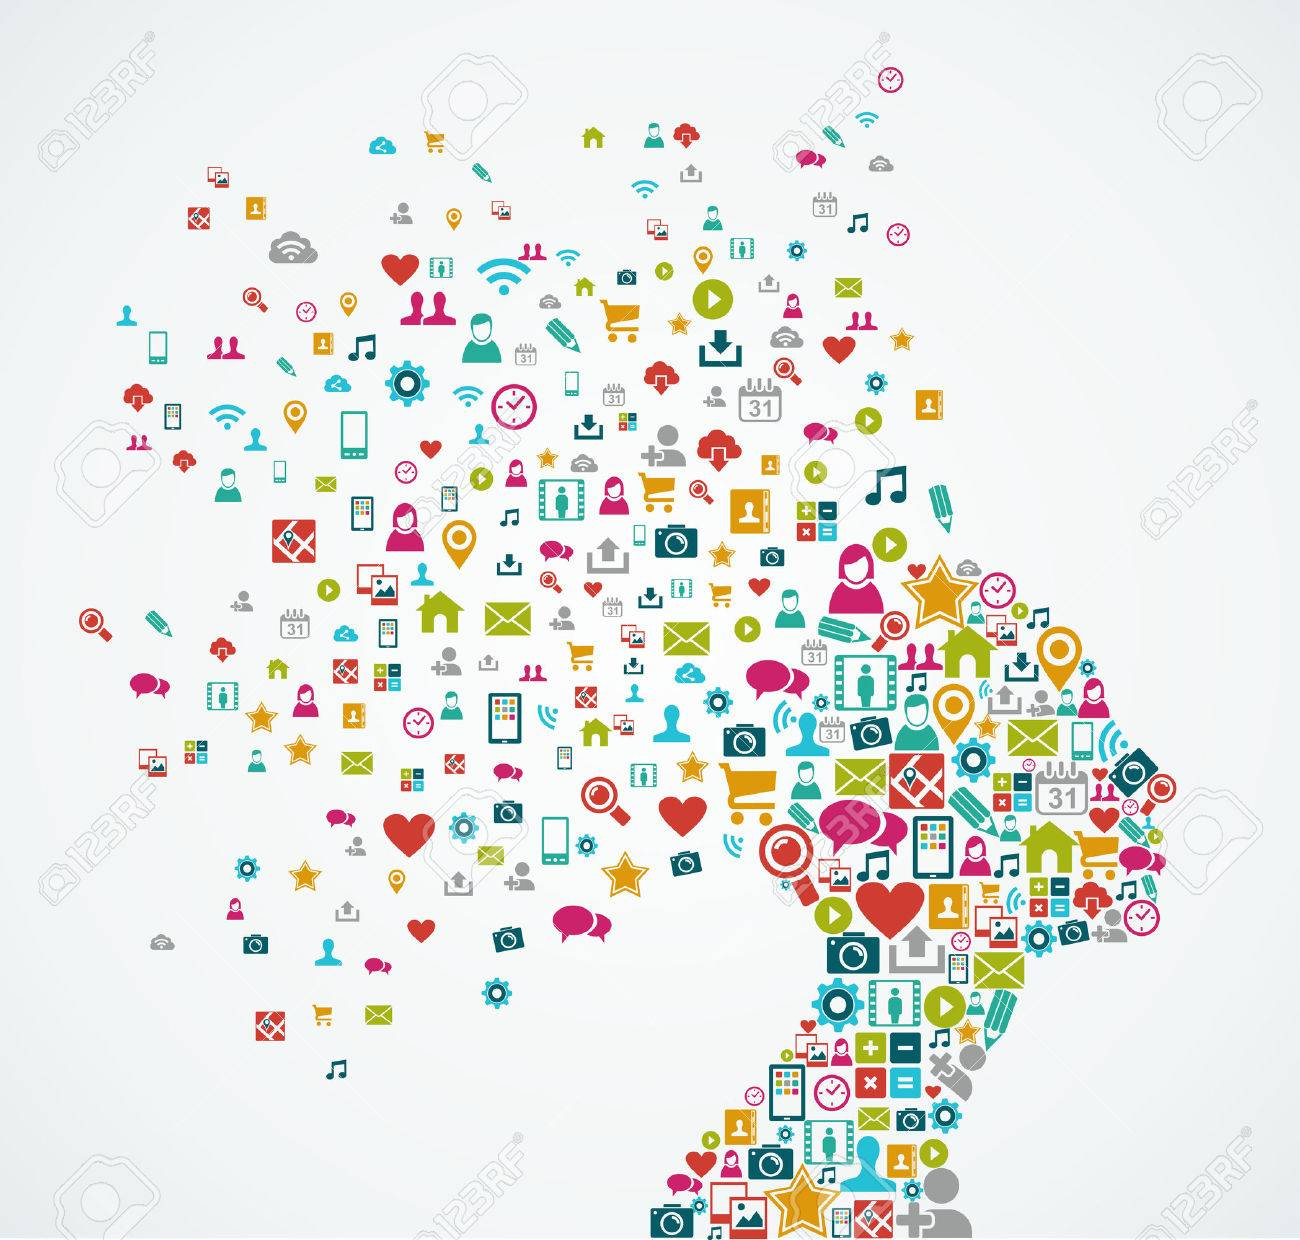 Woman head silhouette made with social media icons splash concept illustration - 22187942